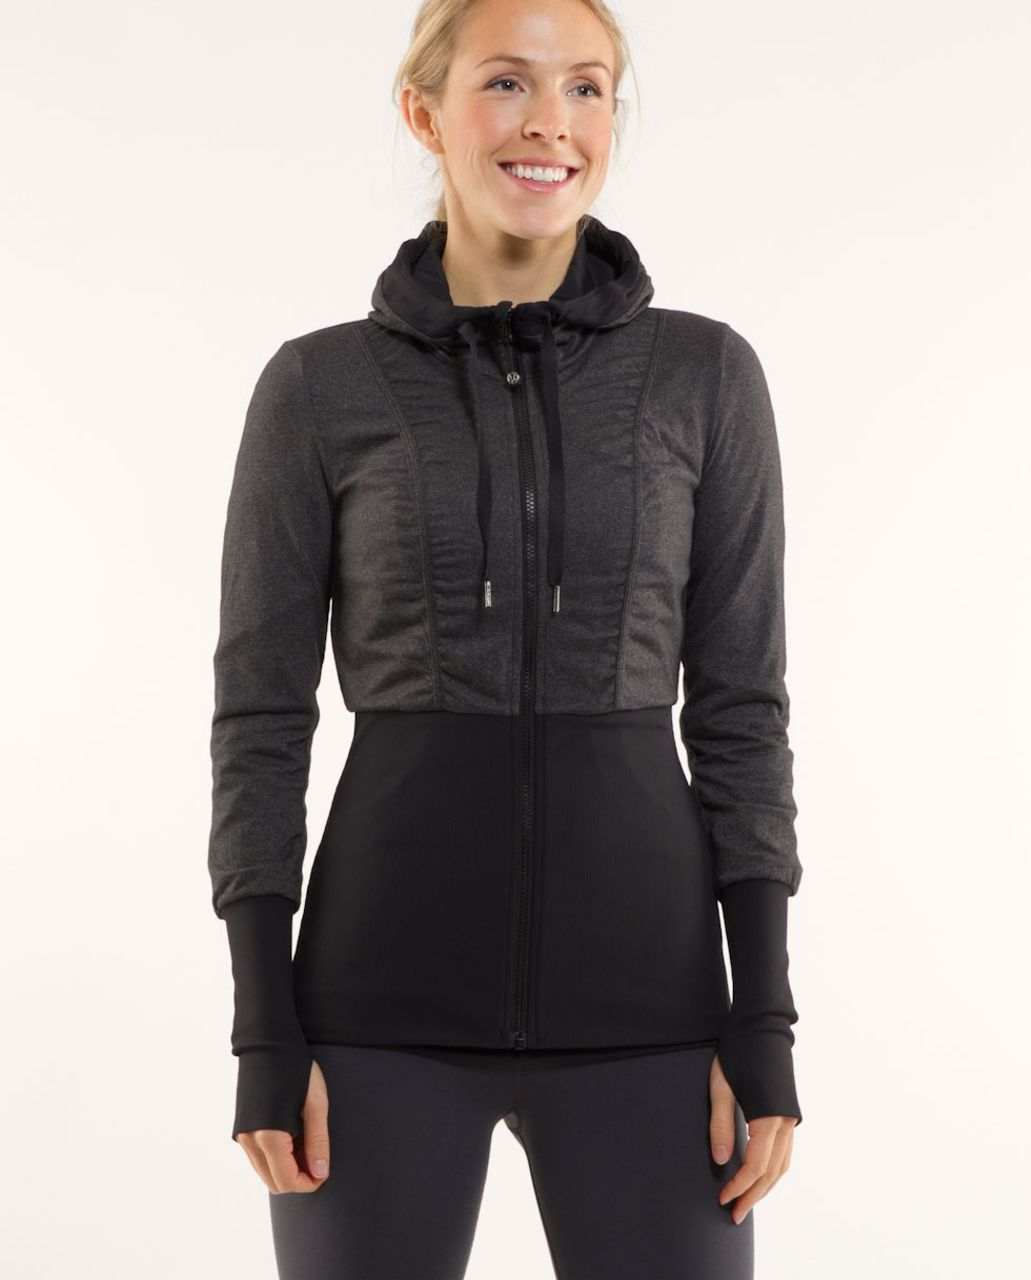 Lululemon Dance Studio Jacket - Black